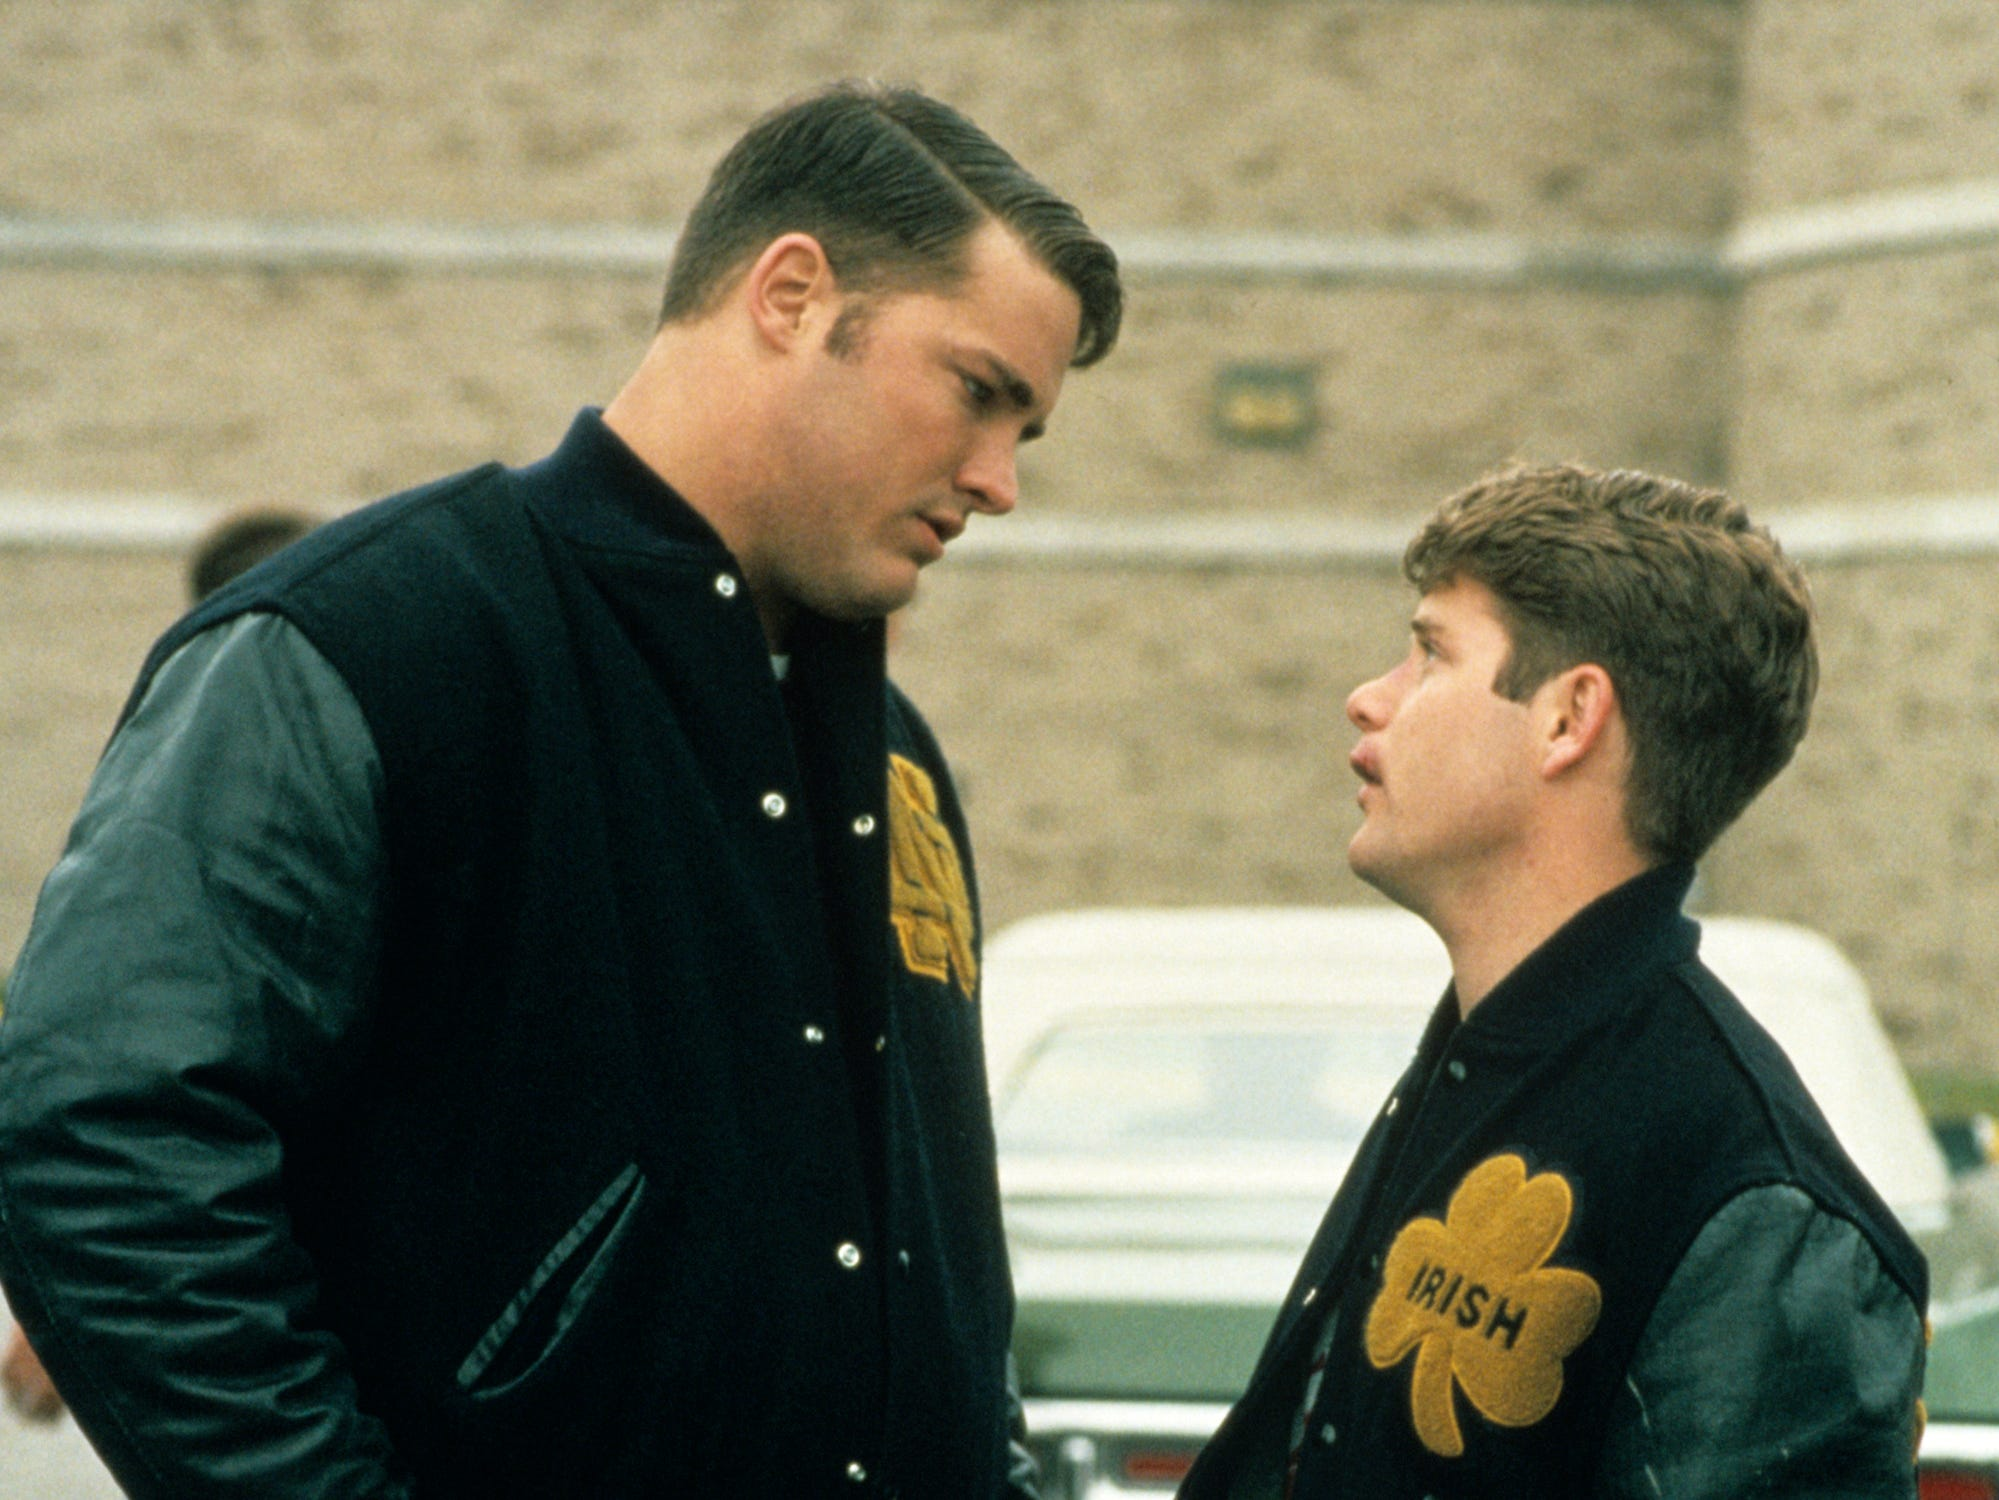 Rudy Ruettiger (Sean Astin), next to a Notre Dame player in the film, was considered too small to play college football.